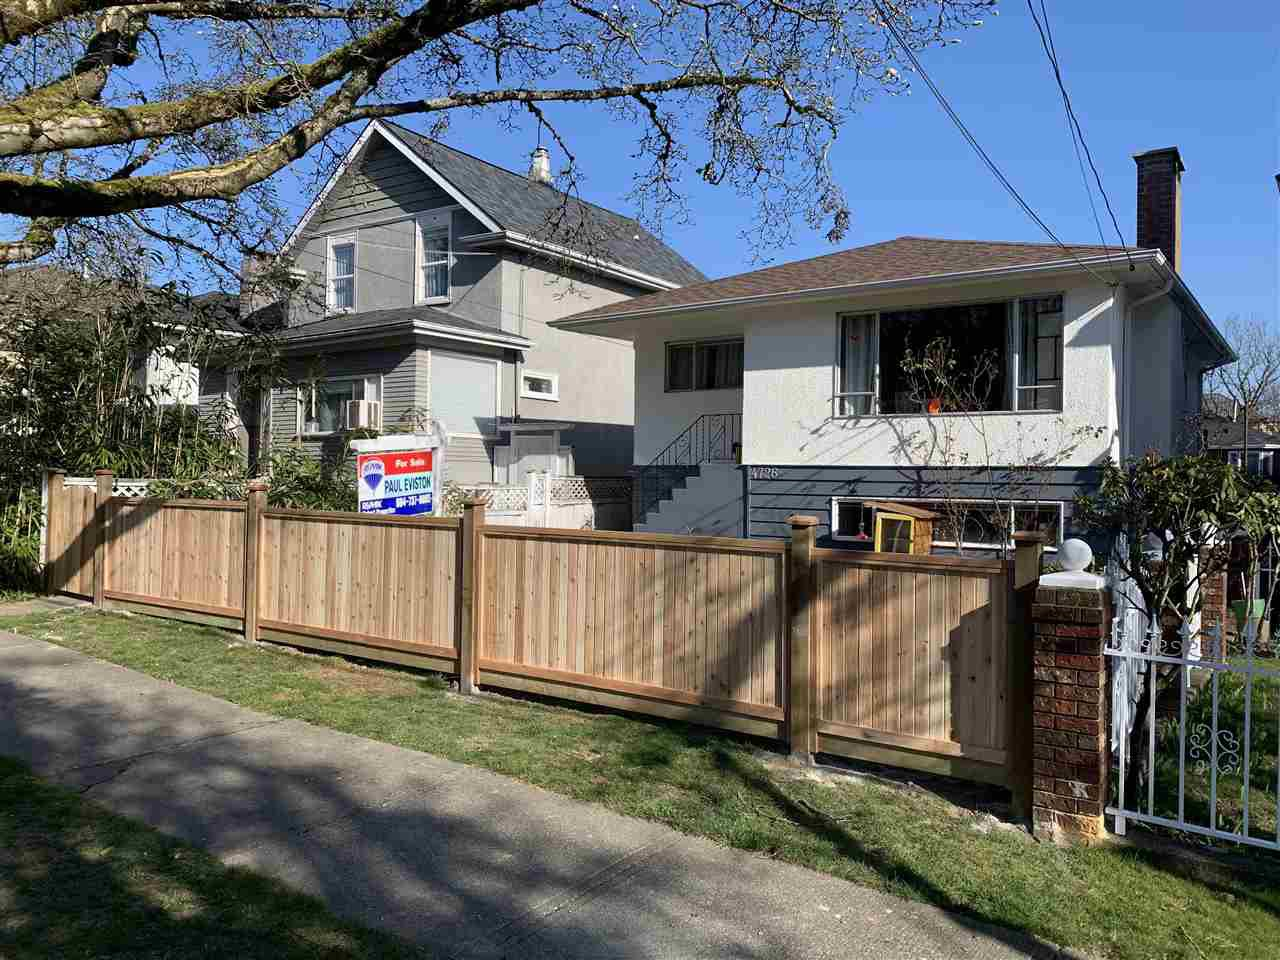 Main Photo: 4726 GOTHARD STREET in Vancouver: Collingwood VE House for sale (Vancouver East)  : MLS®# R2445674